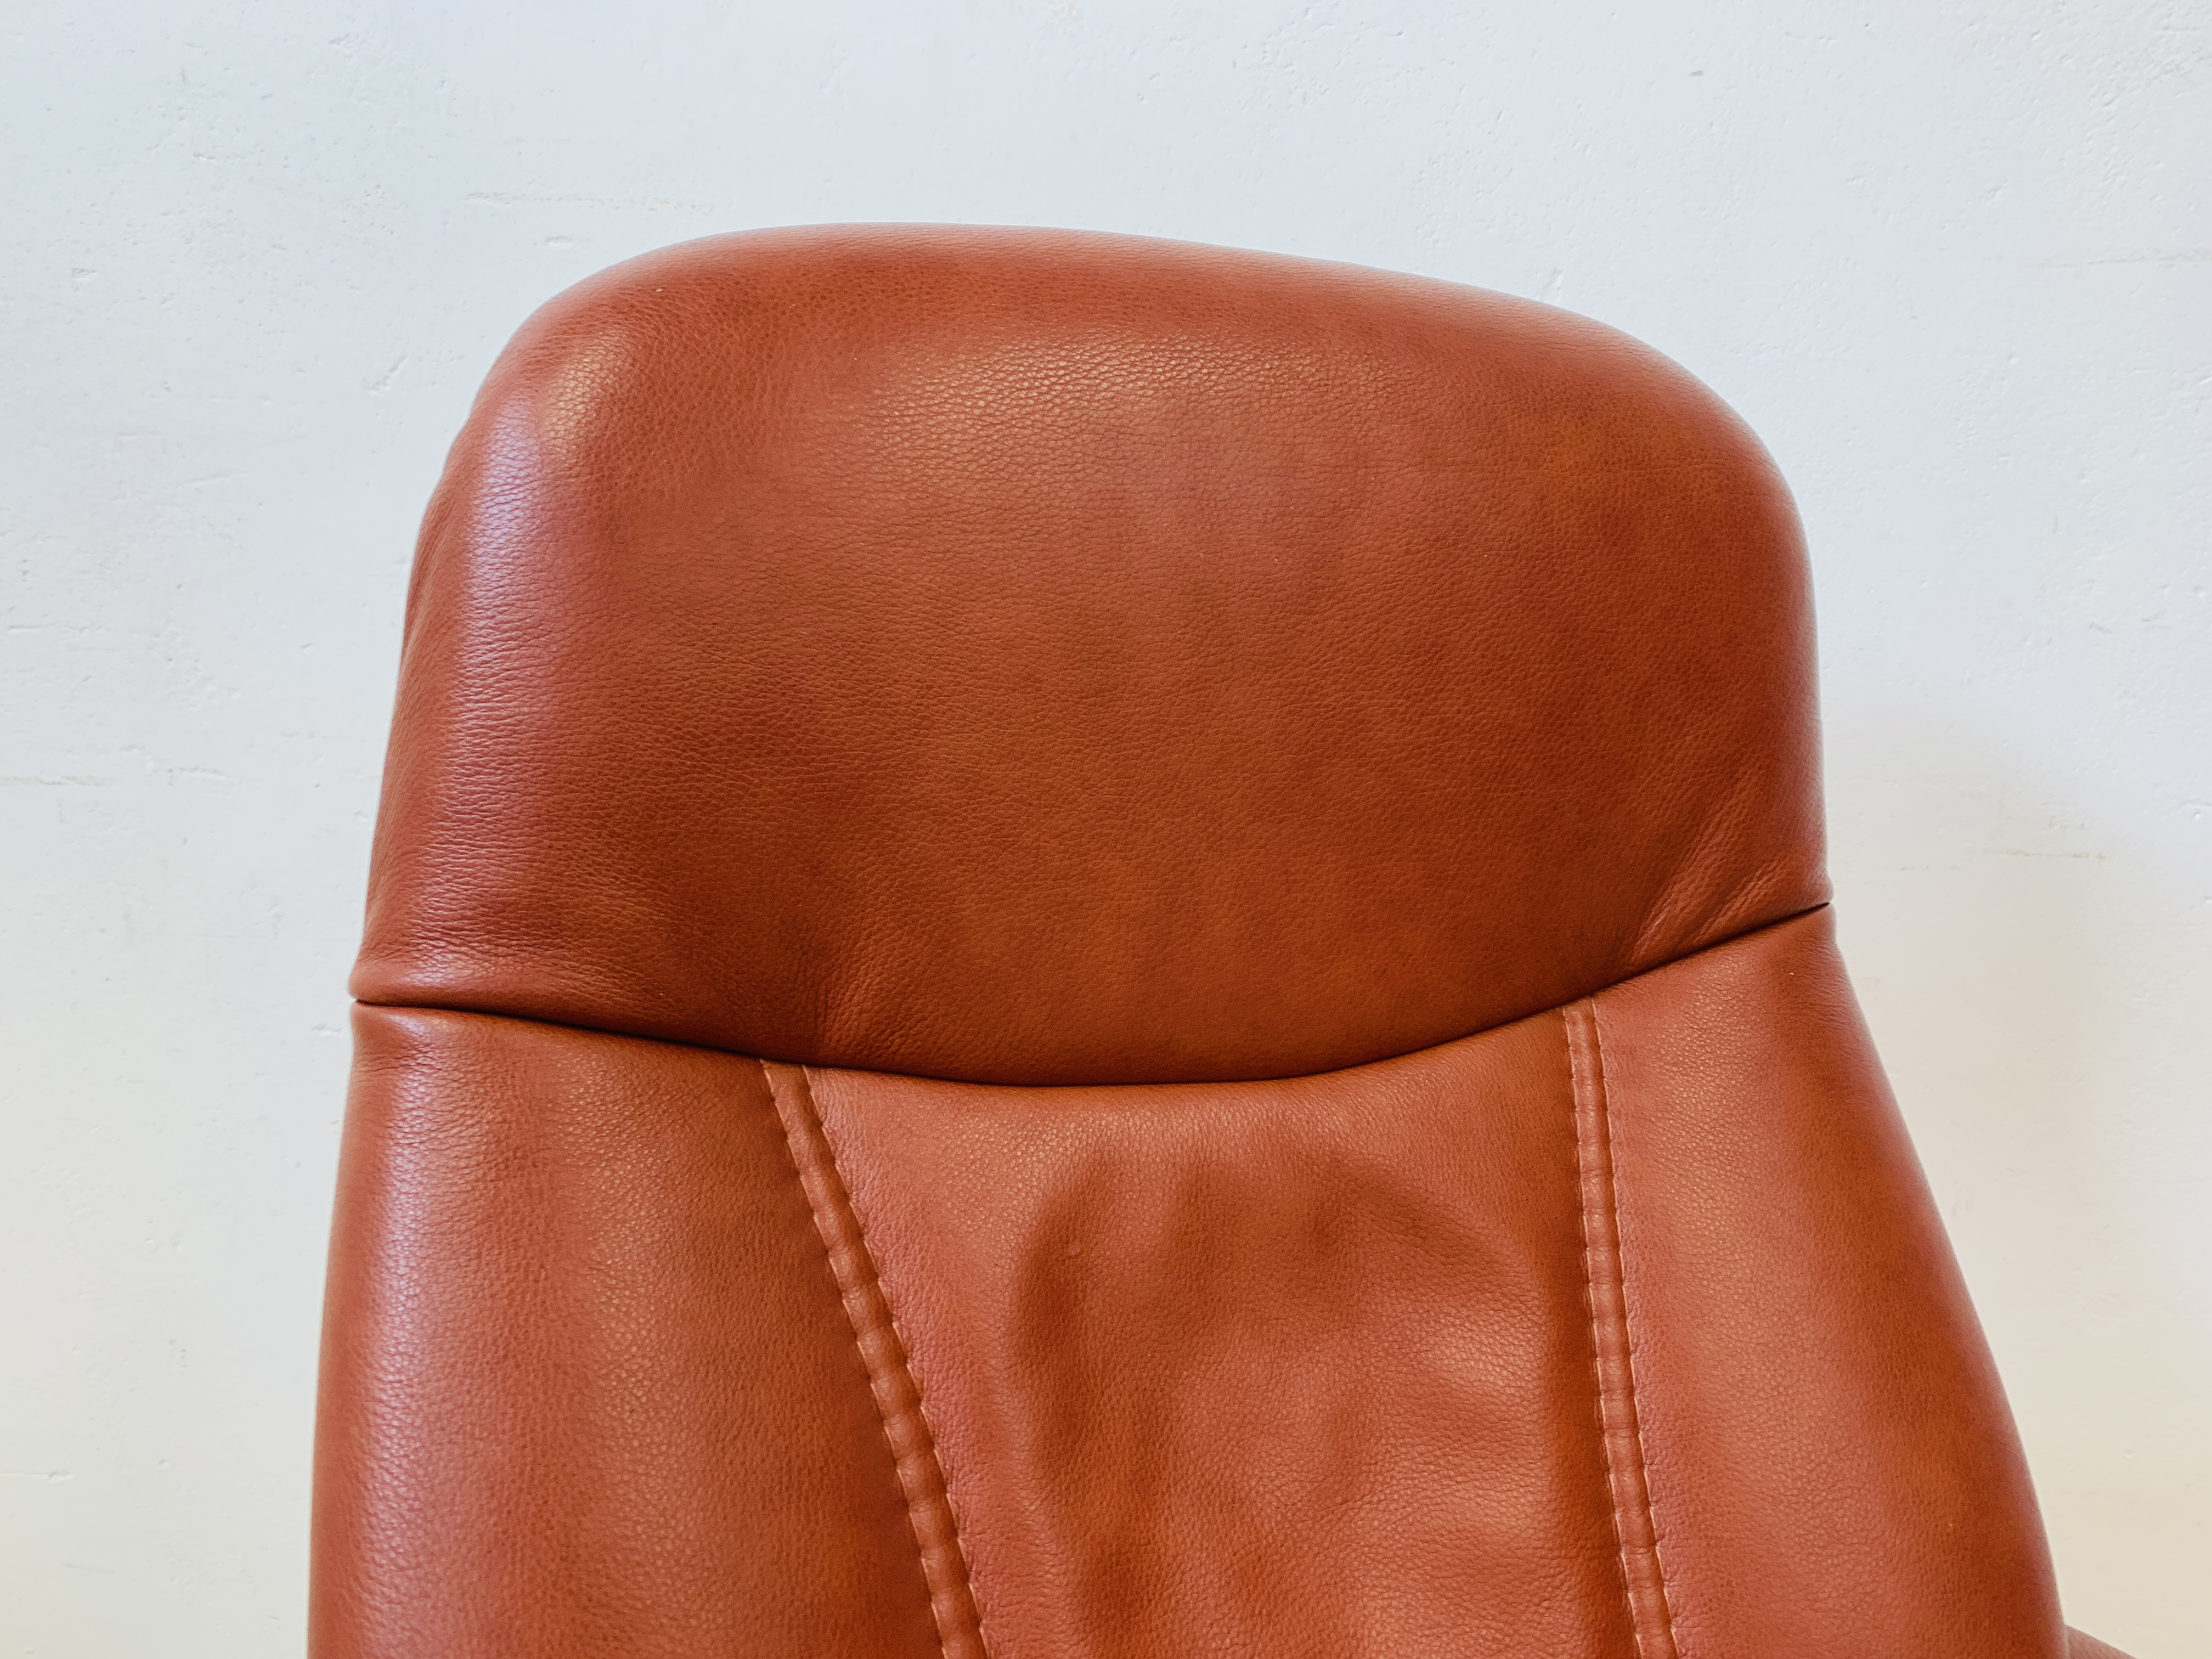 A STRESSLESS TAN LEATHER RELAXER CHAIR - Image 11 of 12